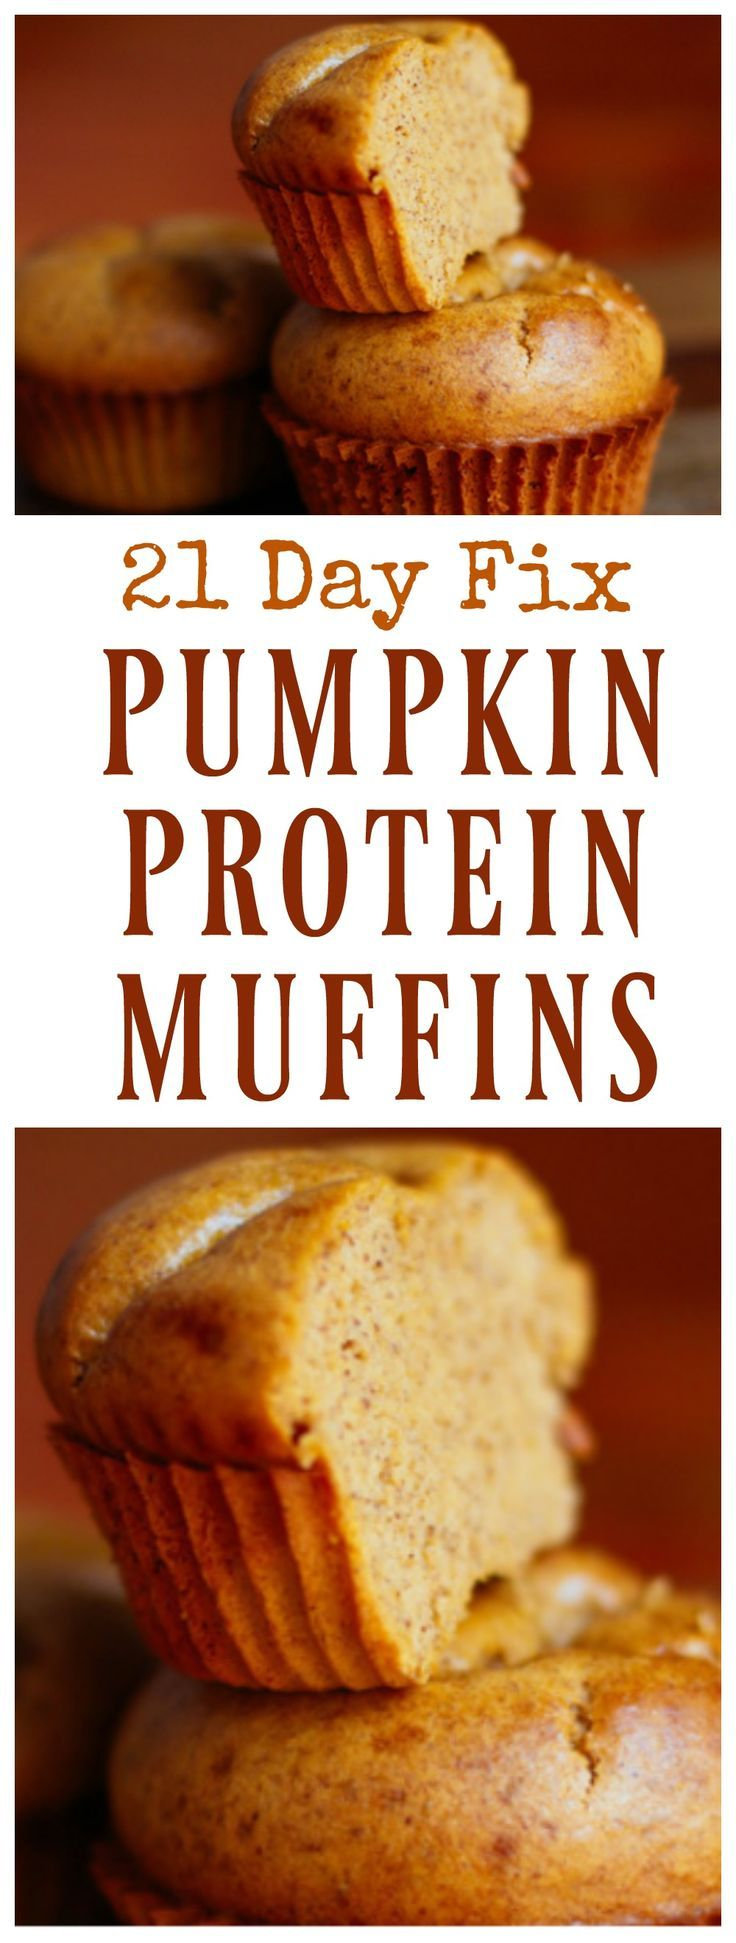 21 Day Fix Pumpkin Protein Muffins #21dayfixmuffins #21dayfix #21dayfixrecipes #21dayfixmuffinrecipes #21dayfixpumpkinmuffins #cleaneatingmuffins #cleaneating #cleaneatingrecipes #cleaneatingmuffinrecipes #cleaneatingpumpkinmuffins